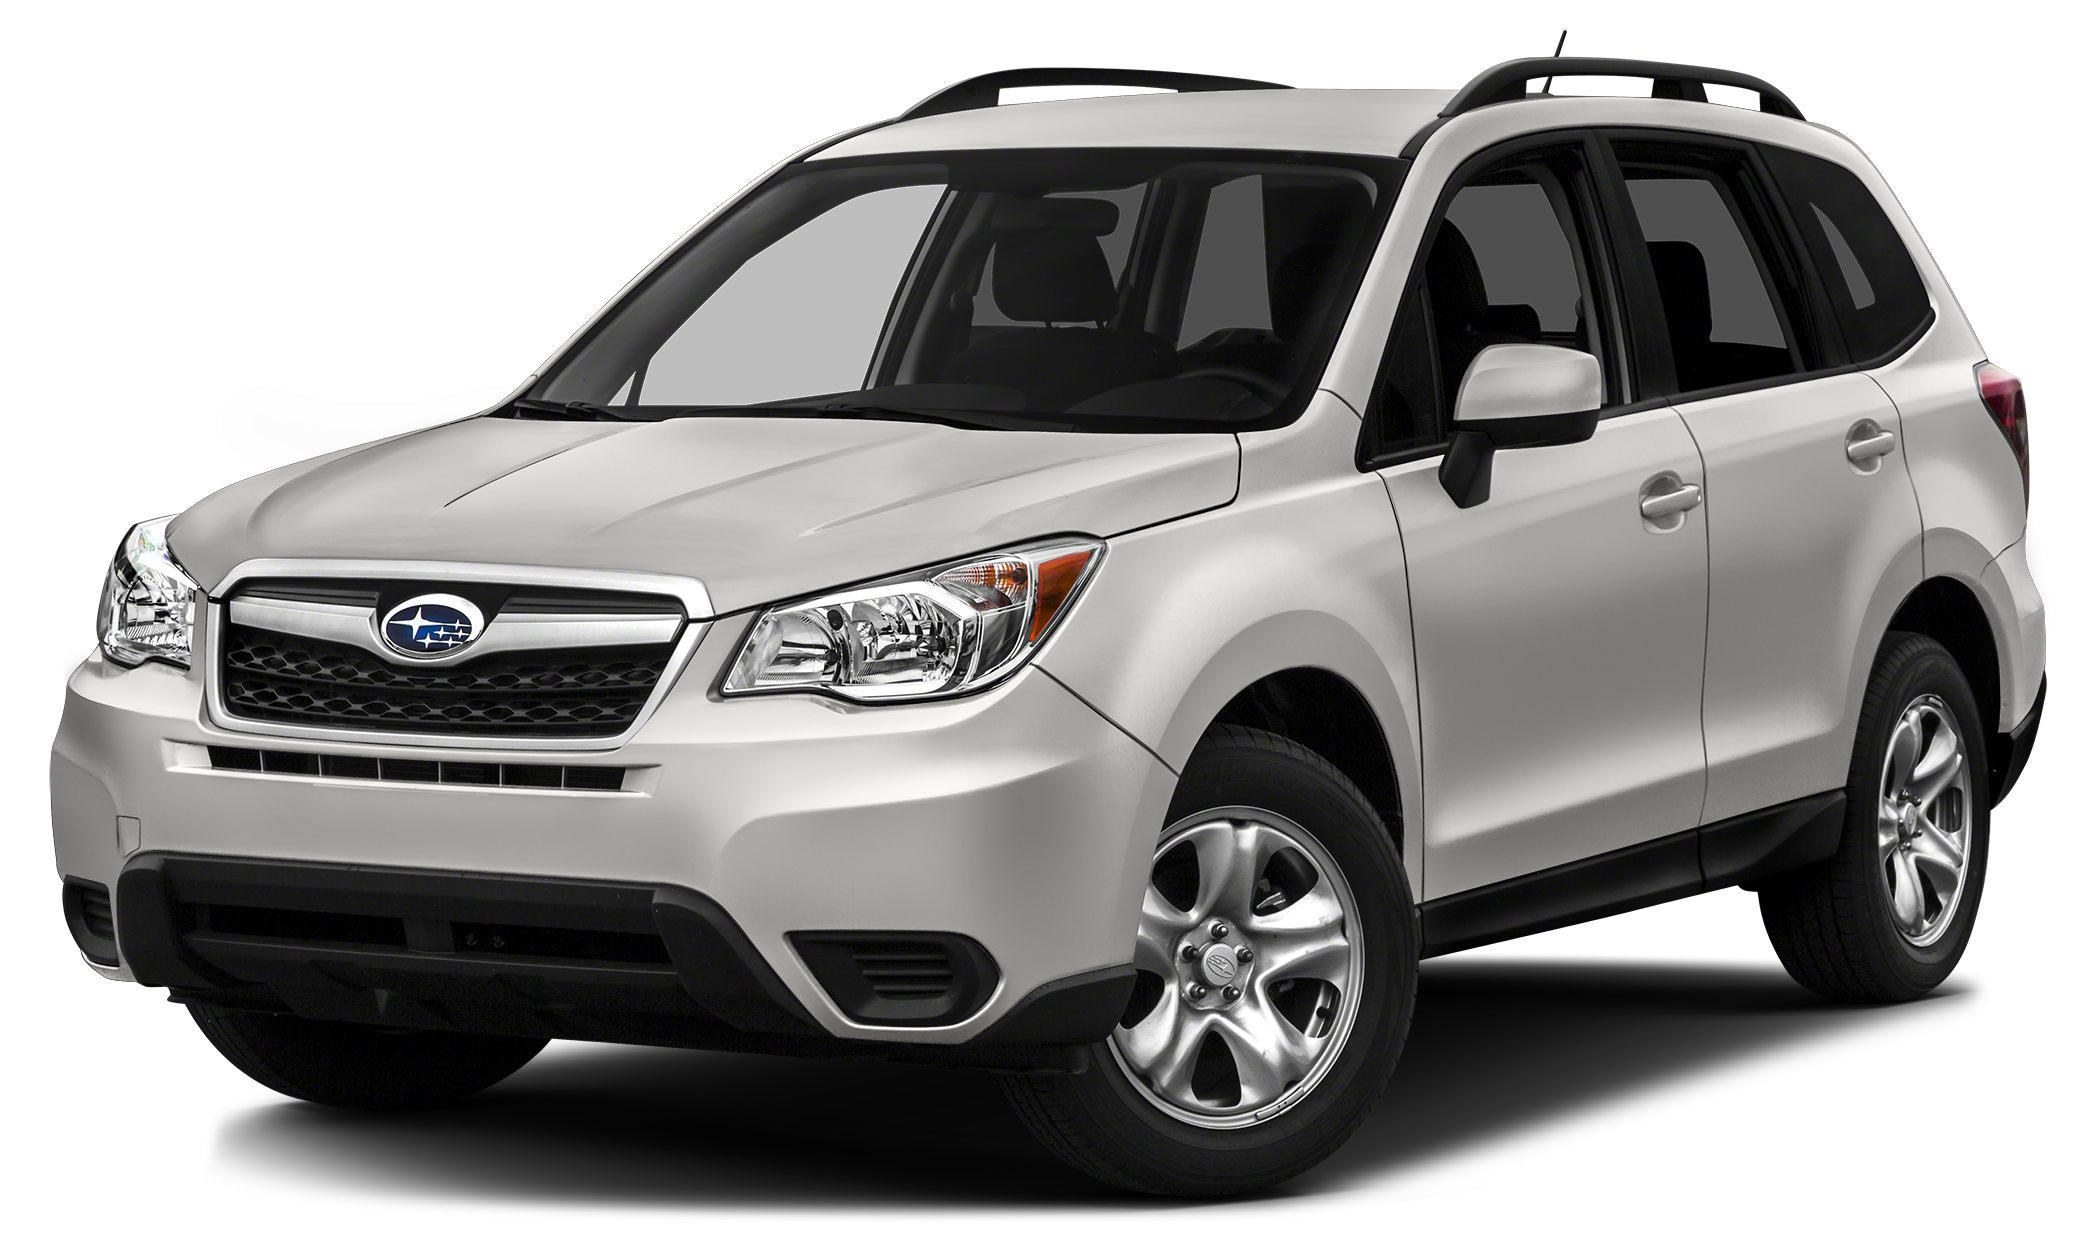 2015 Subaru Forester 25i Premium This outstanding example of a 2015 Subaru Forester 25i Premium